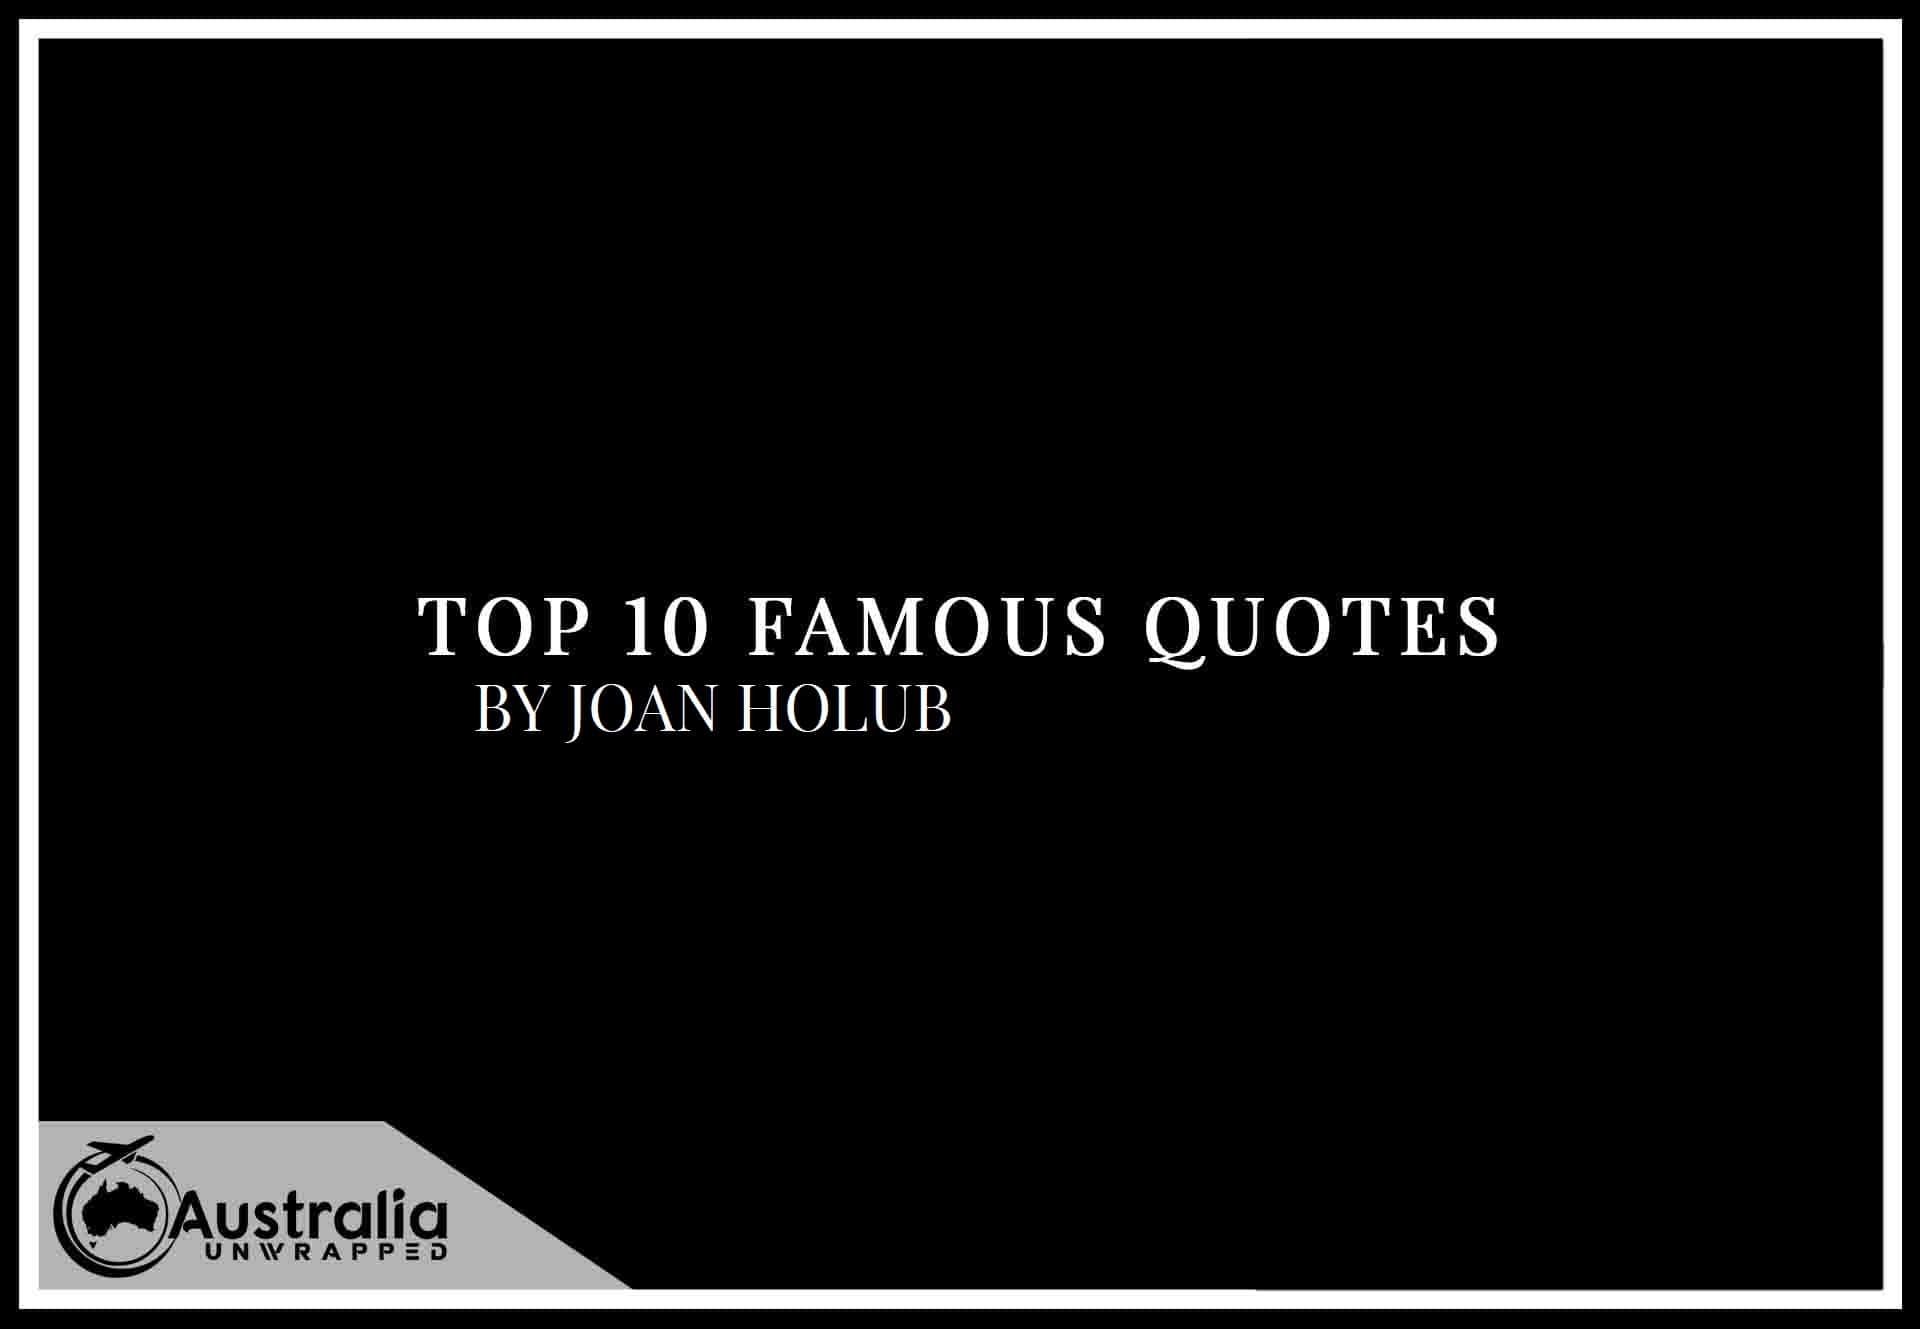 Top 10 Famous Quotes by Author Joan Holub